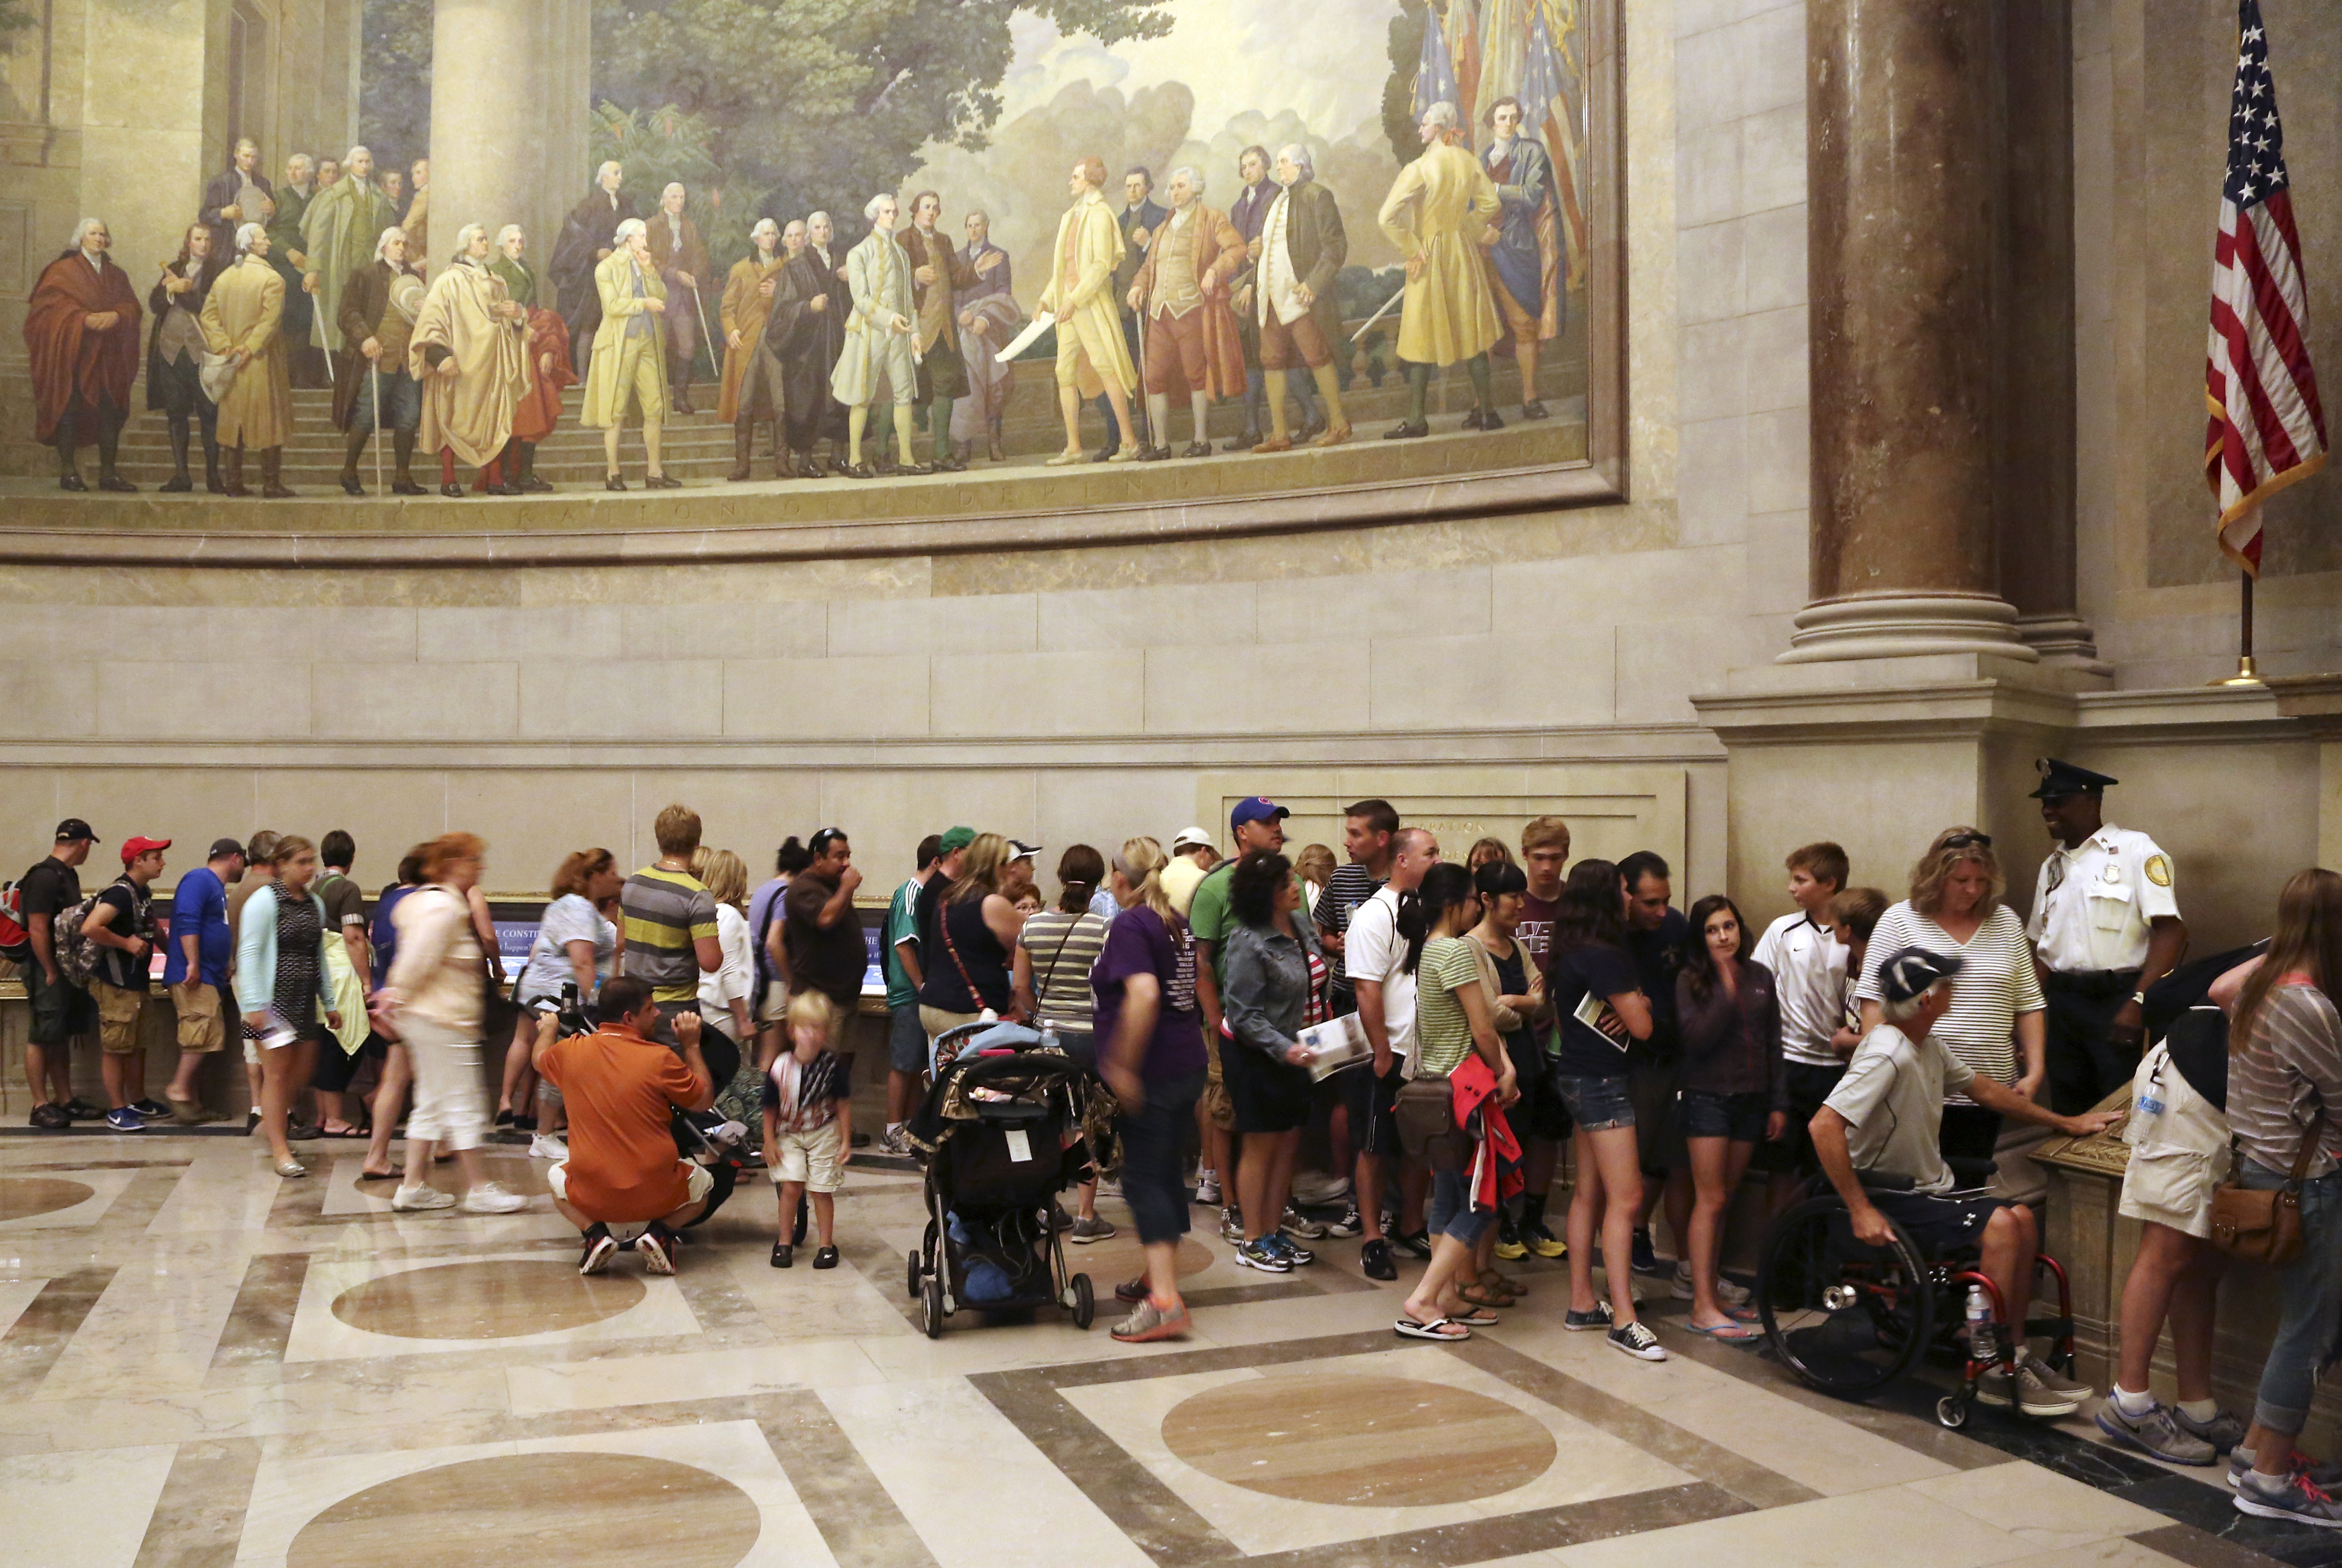 FILE -- Visitors wait in line at the National Archives to view the Declaration of Independence, preserved under glass and special lighting, ahead of the Fourth of July Independence Day holiday in Washington, July 3, 2013. REUTERS/Jonathan Ernst